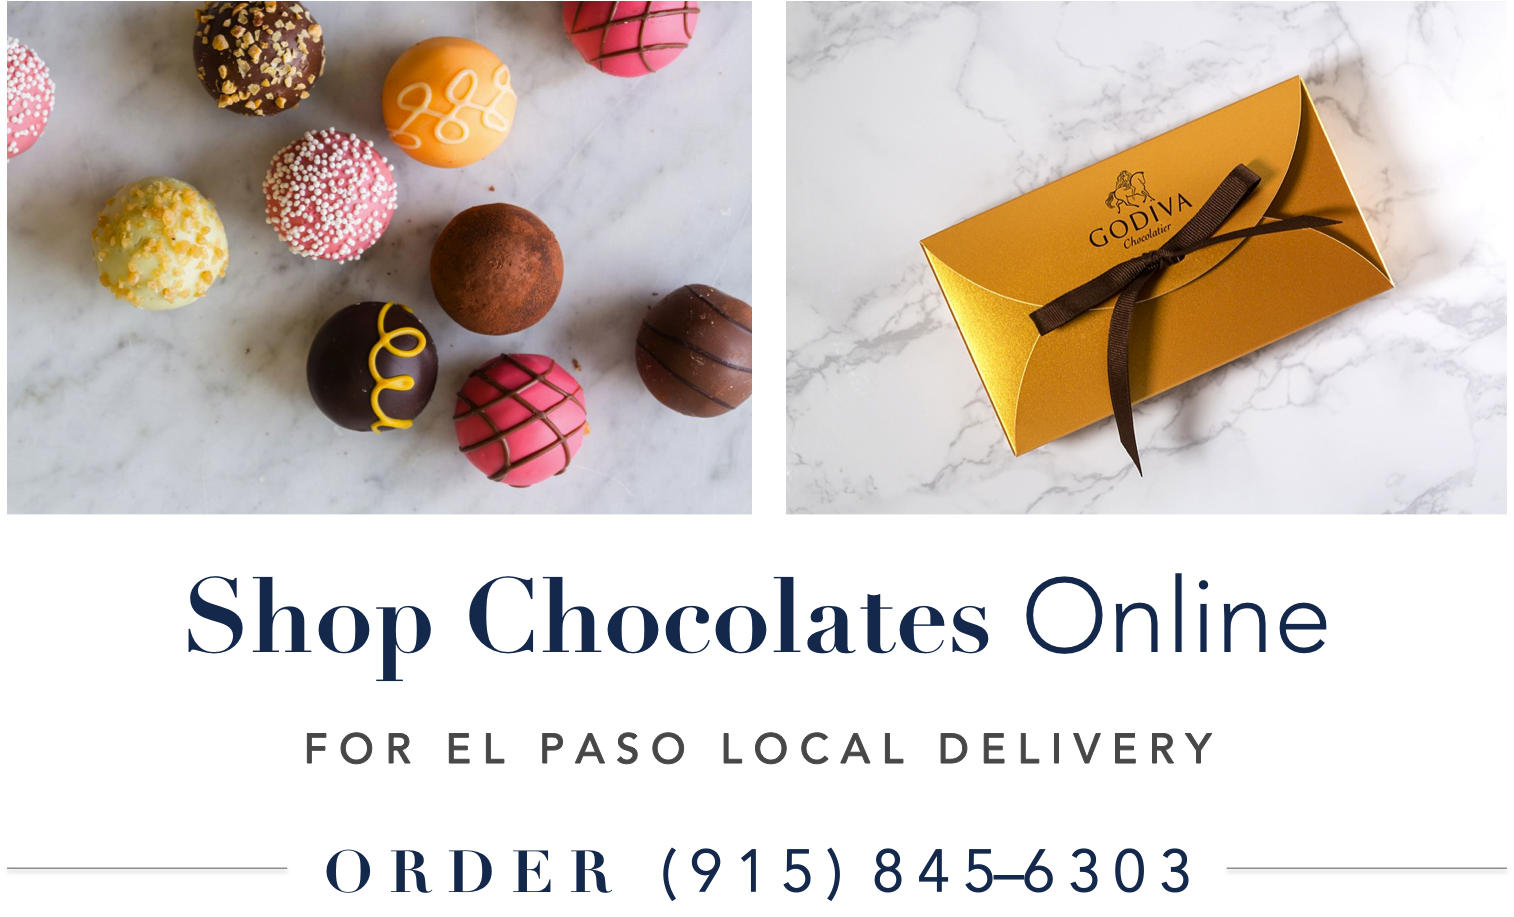 angies-floral-designs-el-paso-chocolat-chocolates-el-paso-chocolates-flowershop-chocolates-gift-baskets-candy-el-paso-times-el-paso-flowershop-el-paso-florist-79912-angies-flower-flowershop-el-paso-west.png